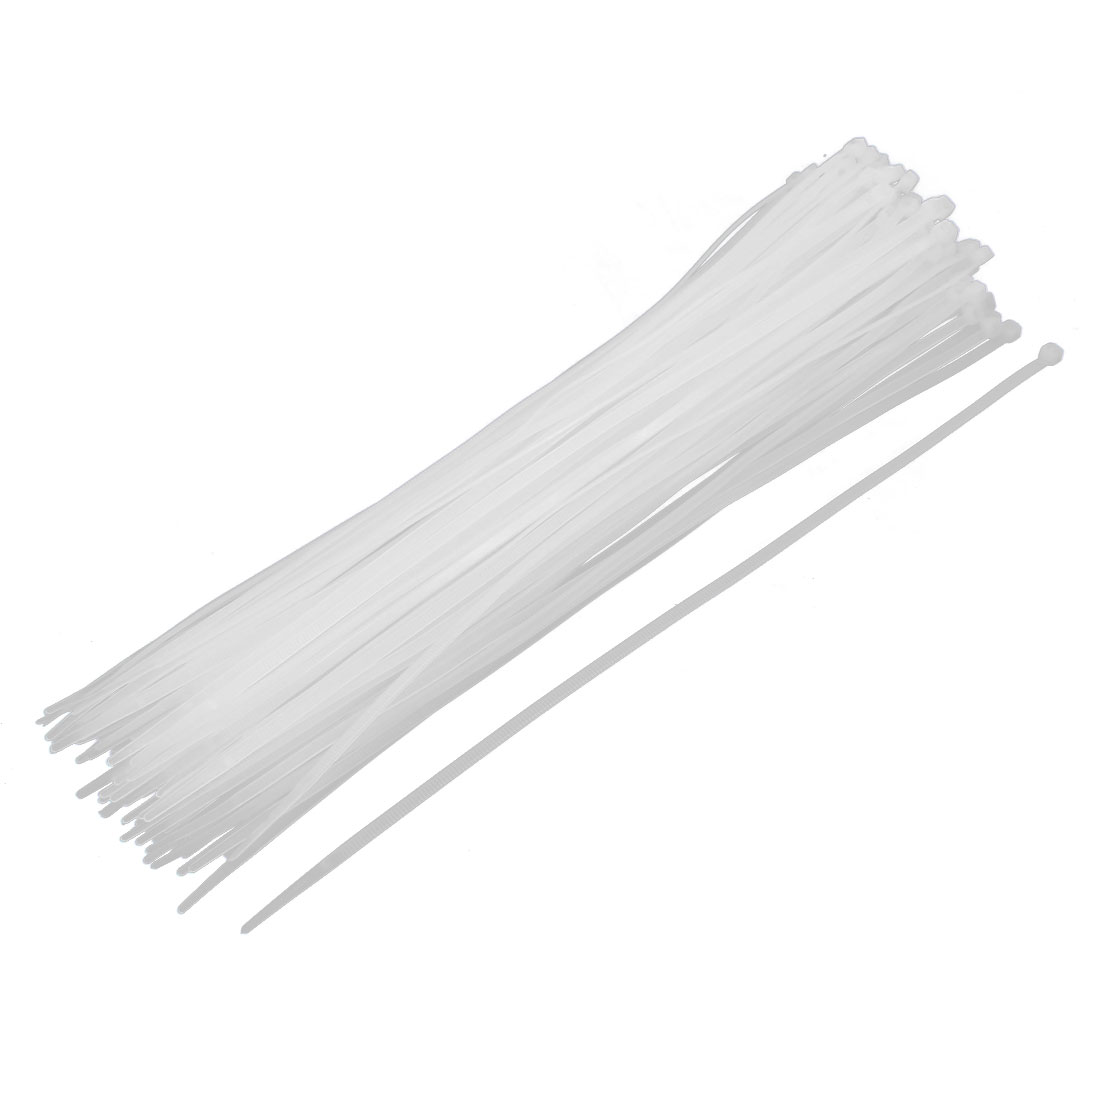 4mm x 300mm Nylon Self Locking Cable Zip Ties Fastener Beige 100pcs